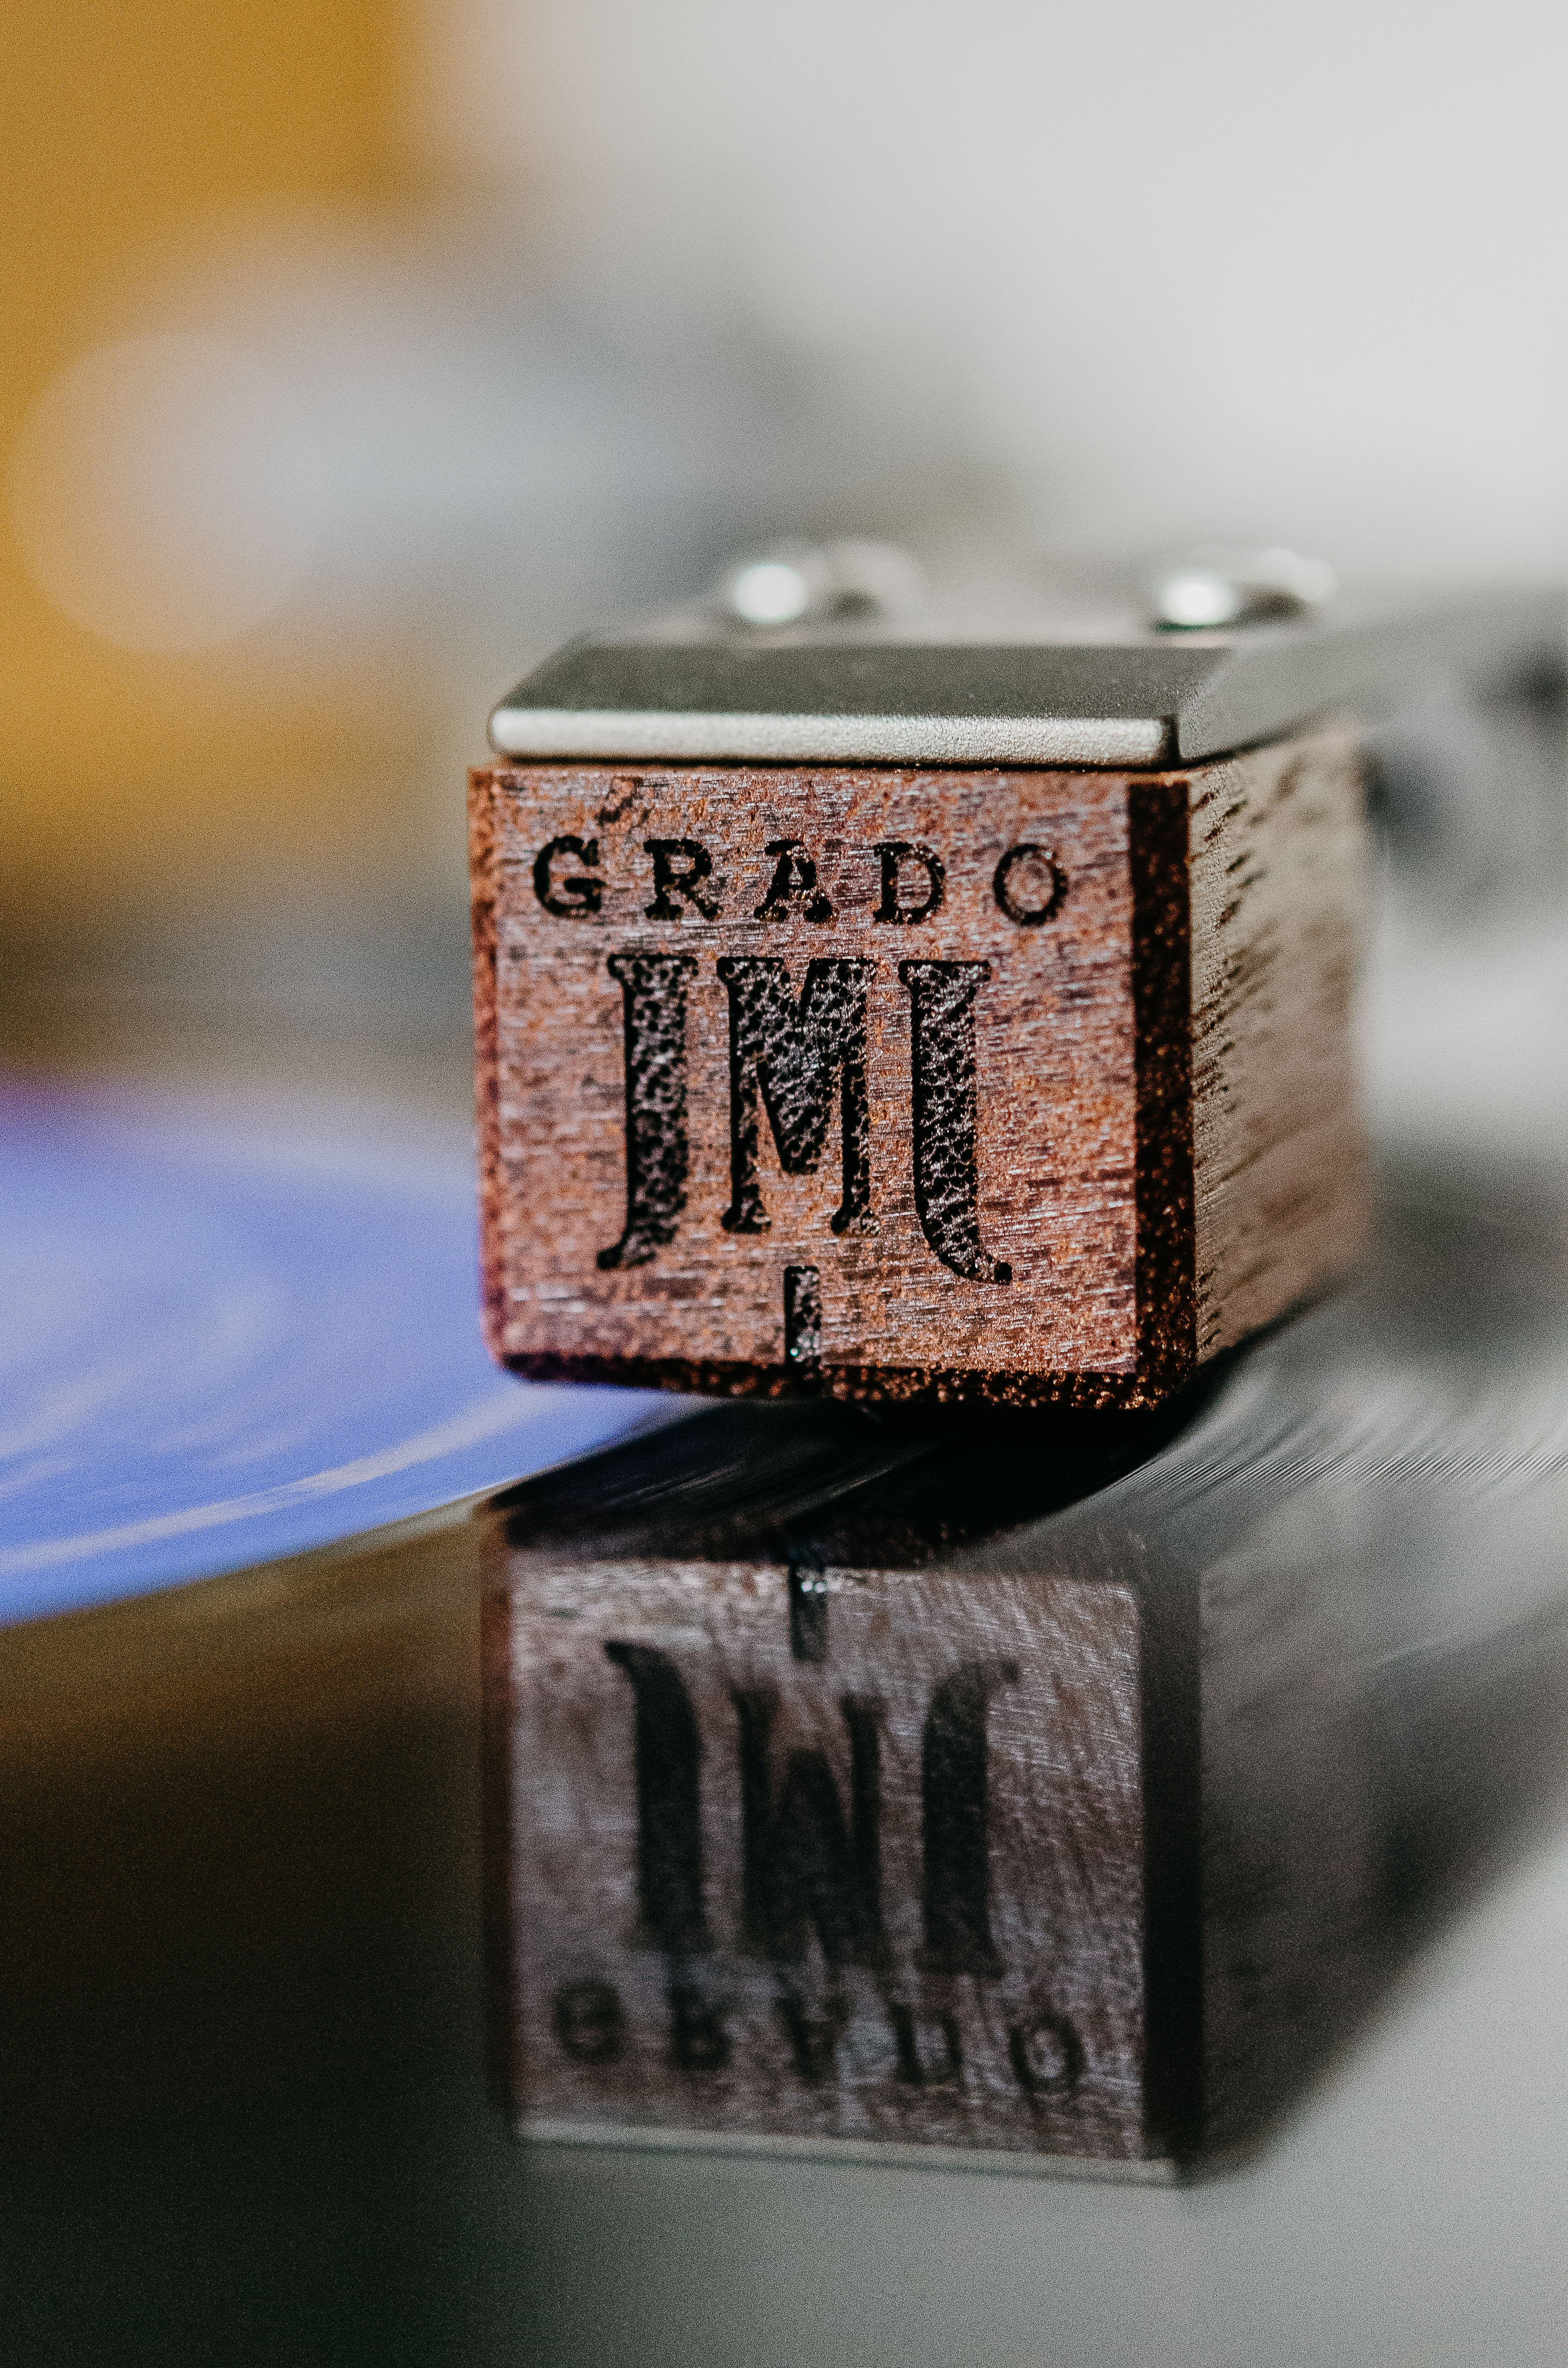 New-Grado-Labs-Wooden-Cartridge-4